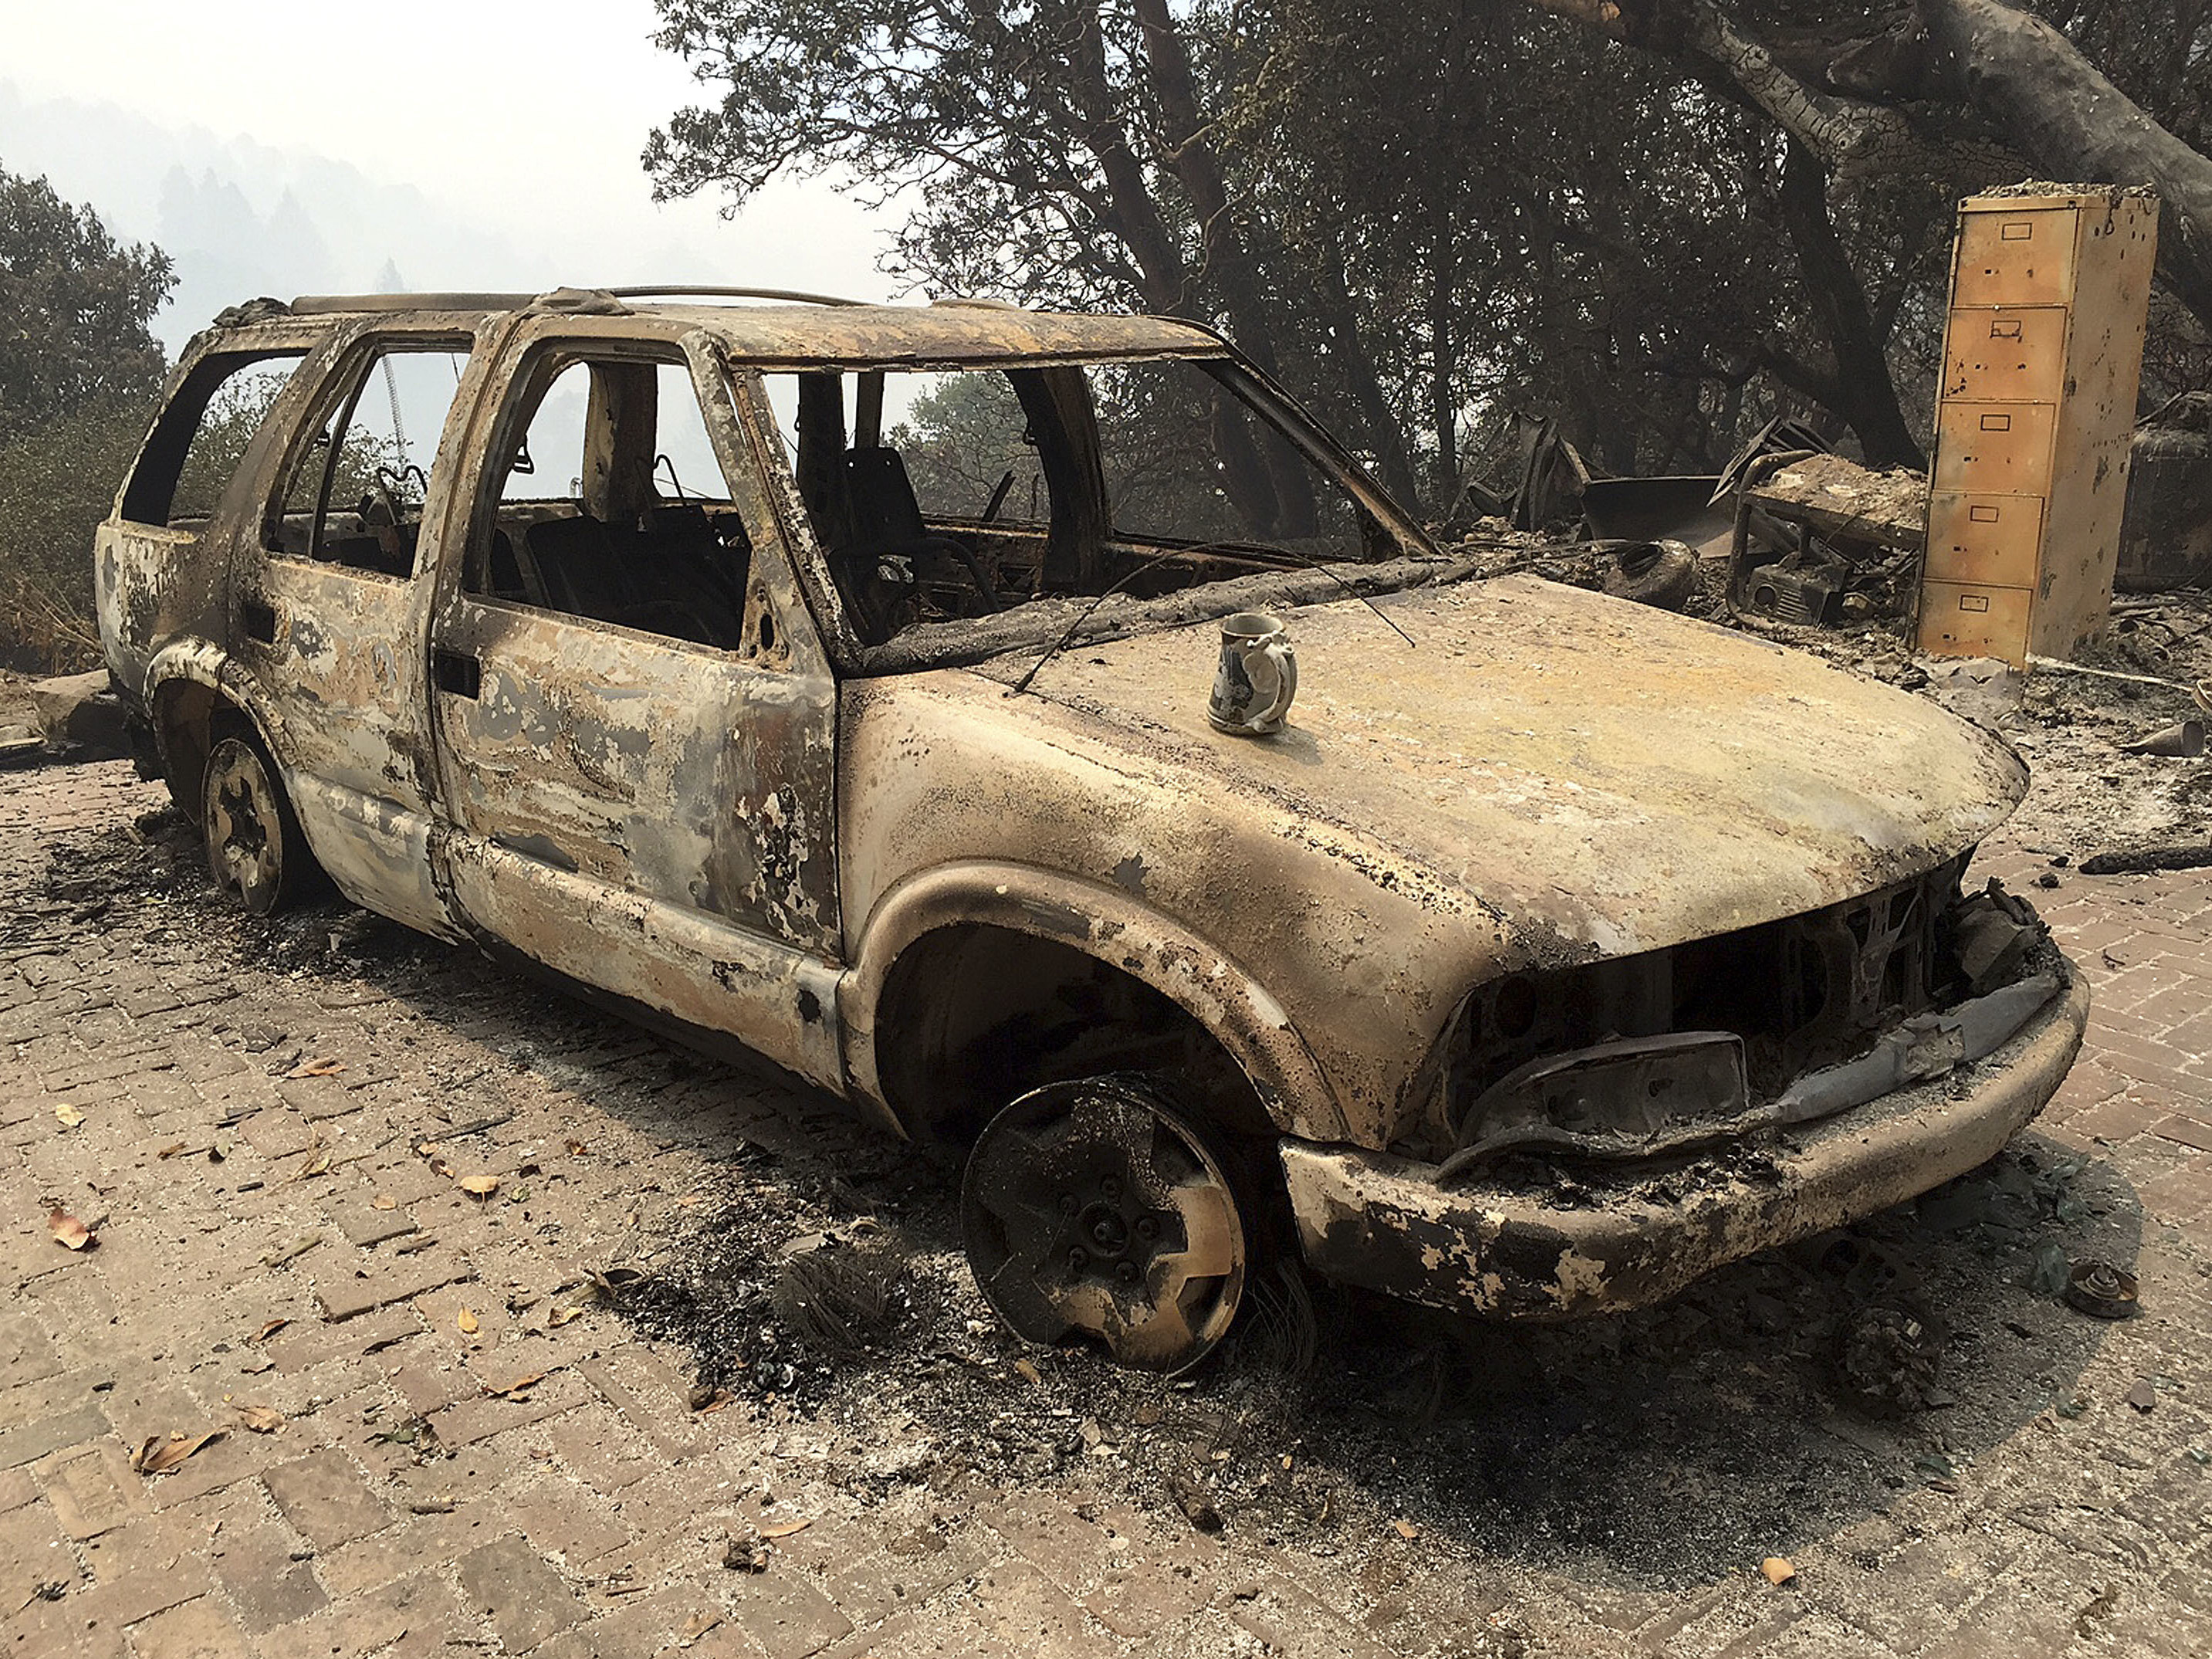 A car destroyed by the Soberanes fire in Big Sur, Calif. Lodge managers and cafe owners there are facing cancelled bookings after fire officials warned that crews will likely be battling the fire for another month. Terry Chea/AP